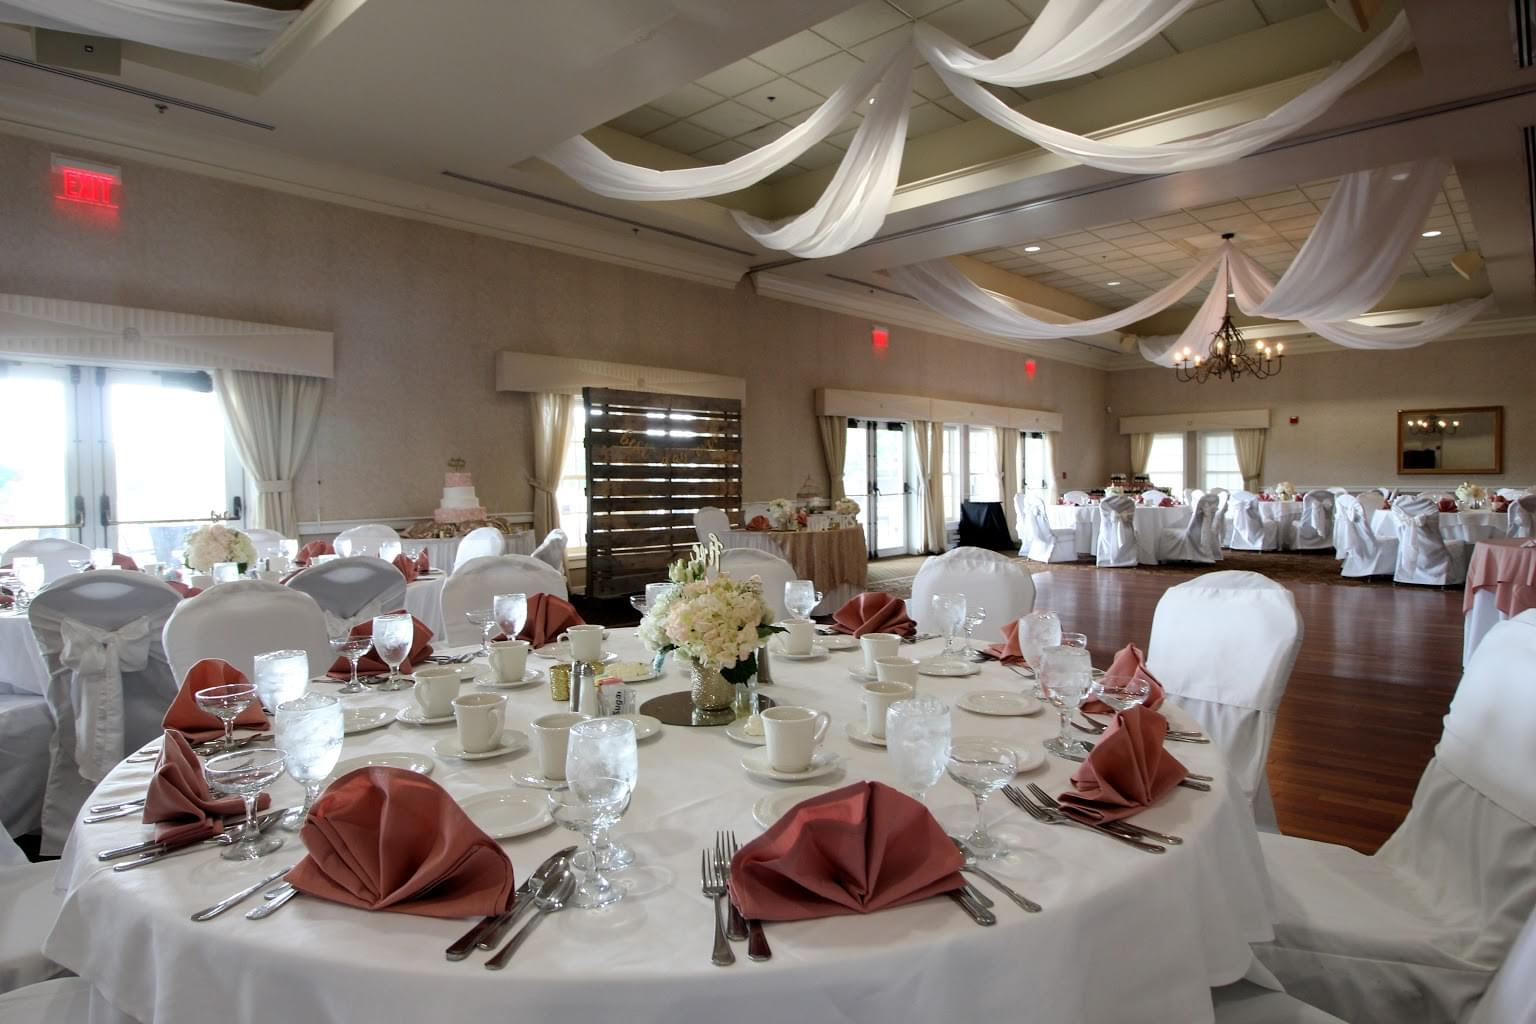 Marco's Restaurant & Banquets – Marlton, NJ – Indian Spring Country Club Banquet Hall